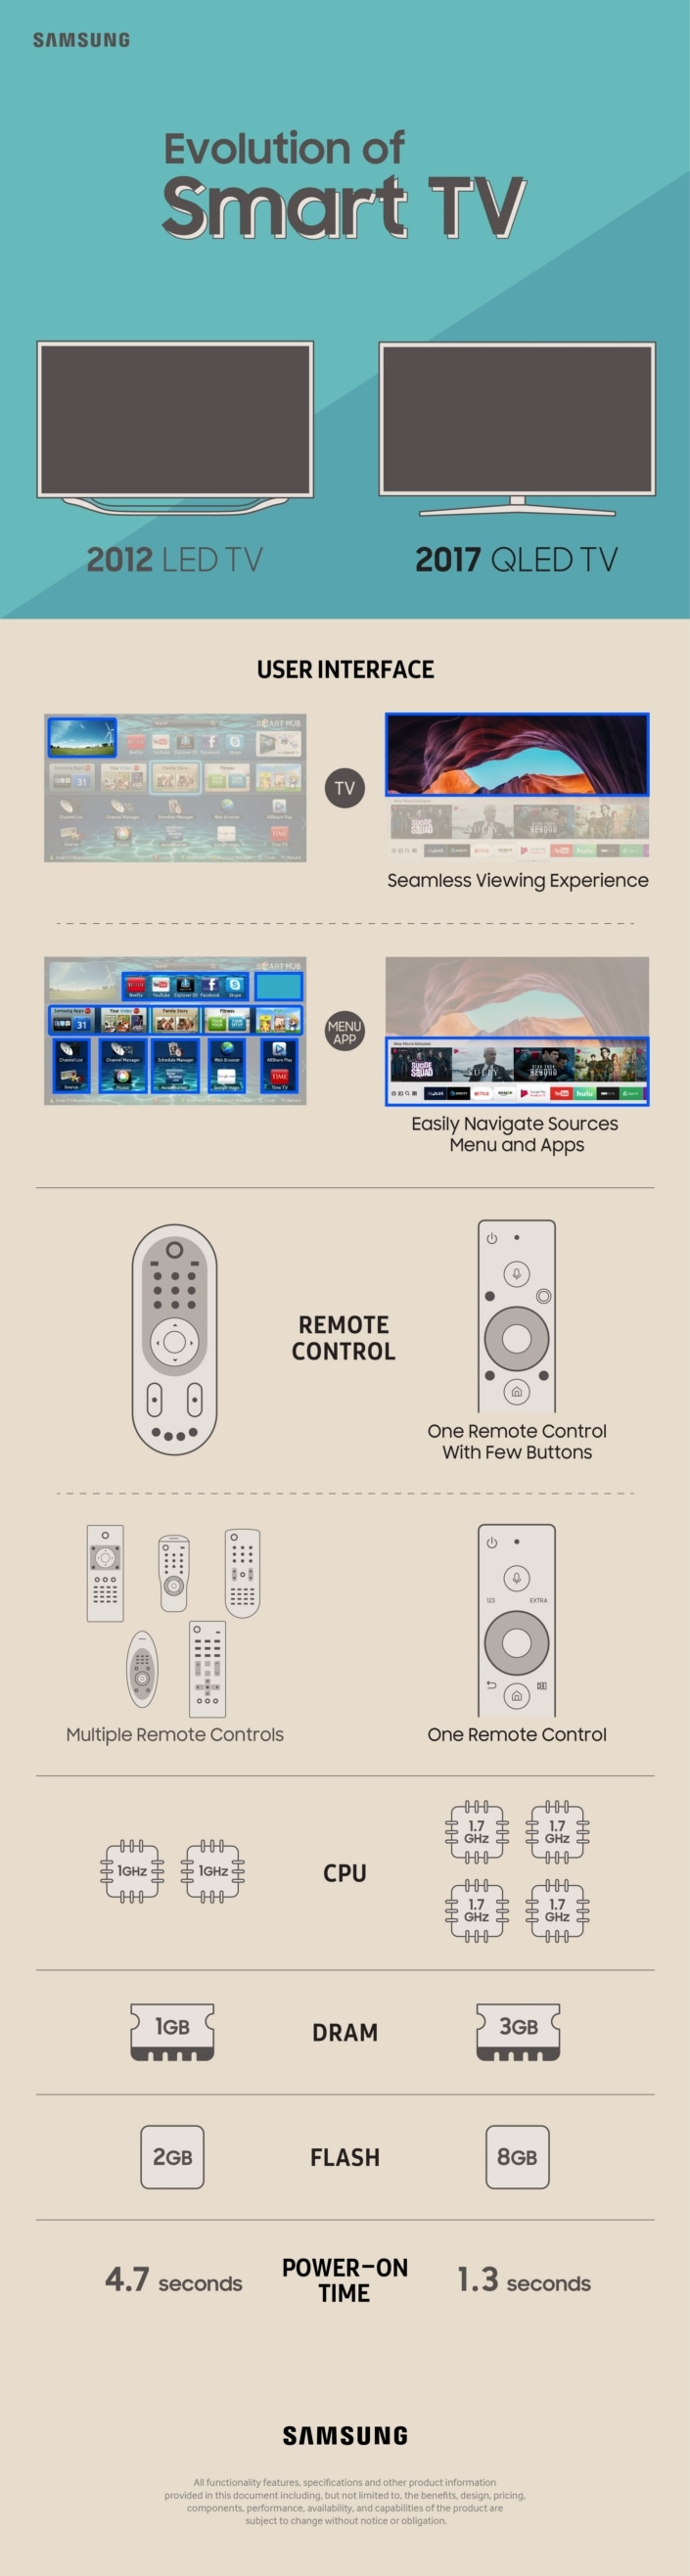 The Evolution of Smart TV